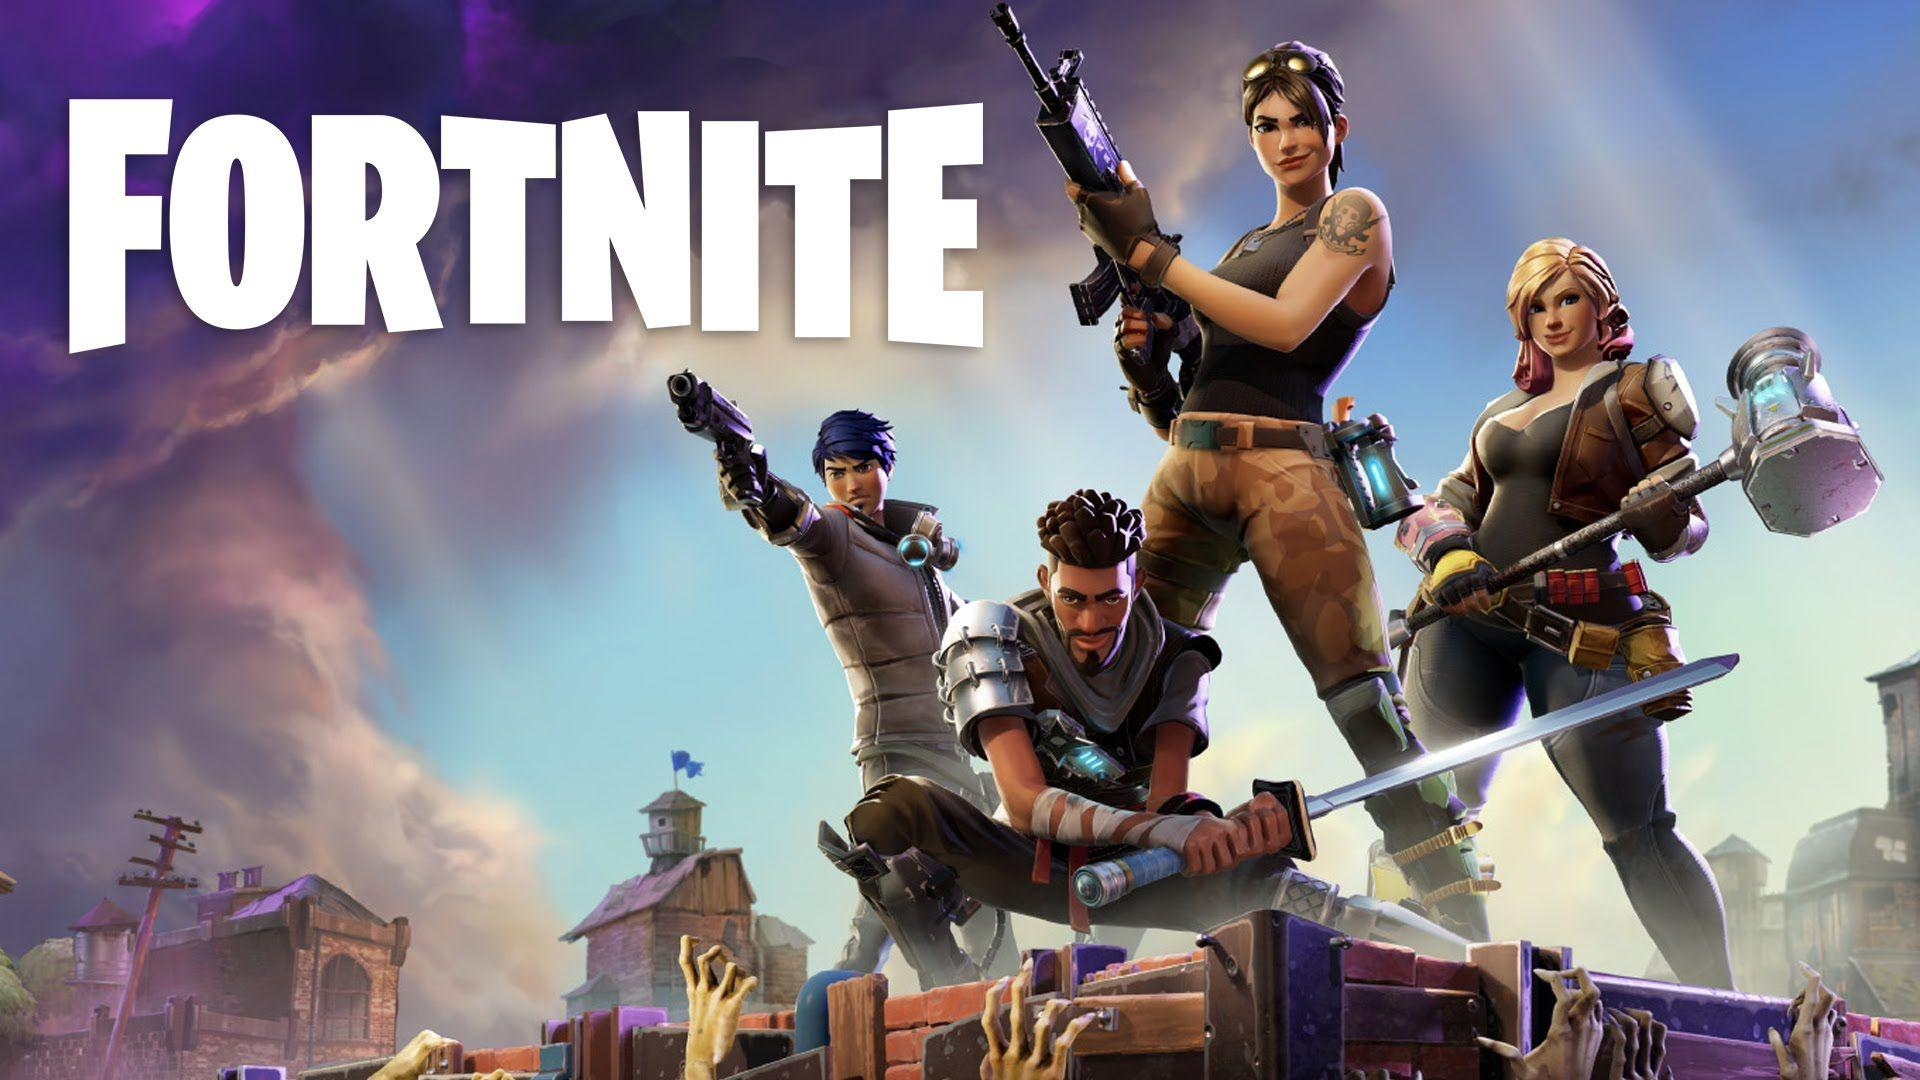 Fortnite's New Battle Royale Mode Is Now Free On Consoles And PC